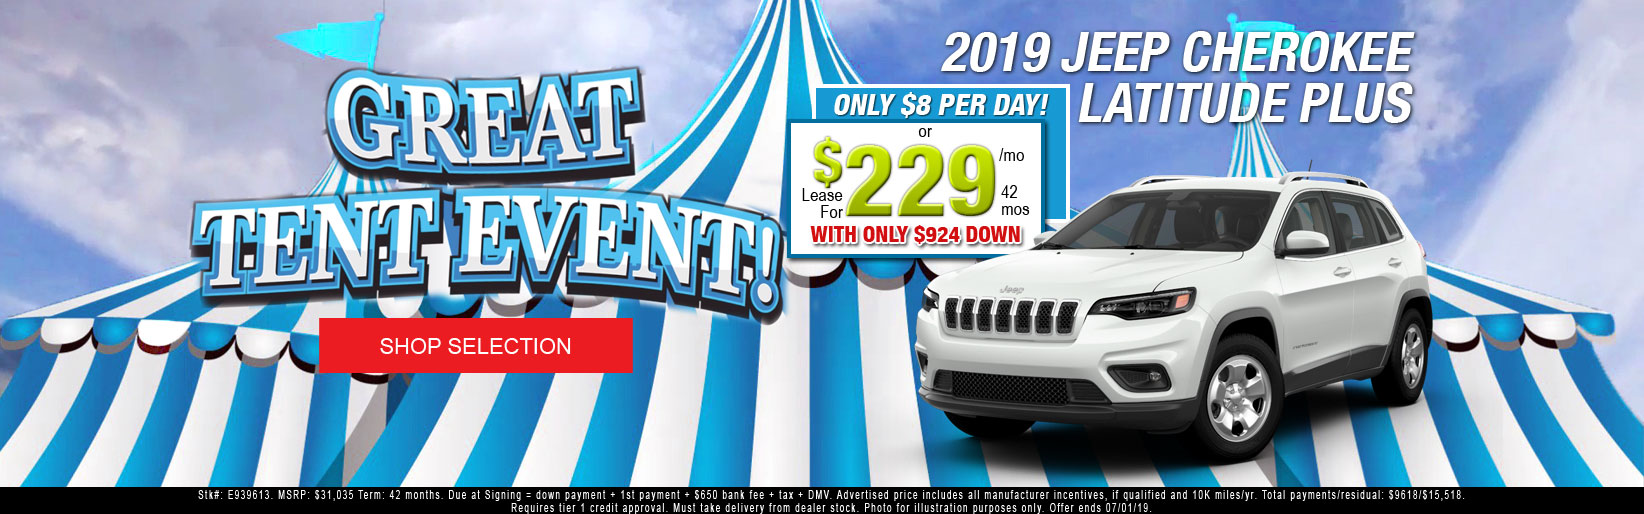 new 2019 chrysler jeep dodge ram \u0026 used car dealer in the bronx, nyJeep Cherokee Parts Diagram Http Wwwautopartslibcom Jeepcherokee #13